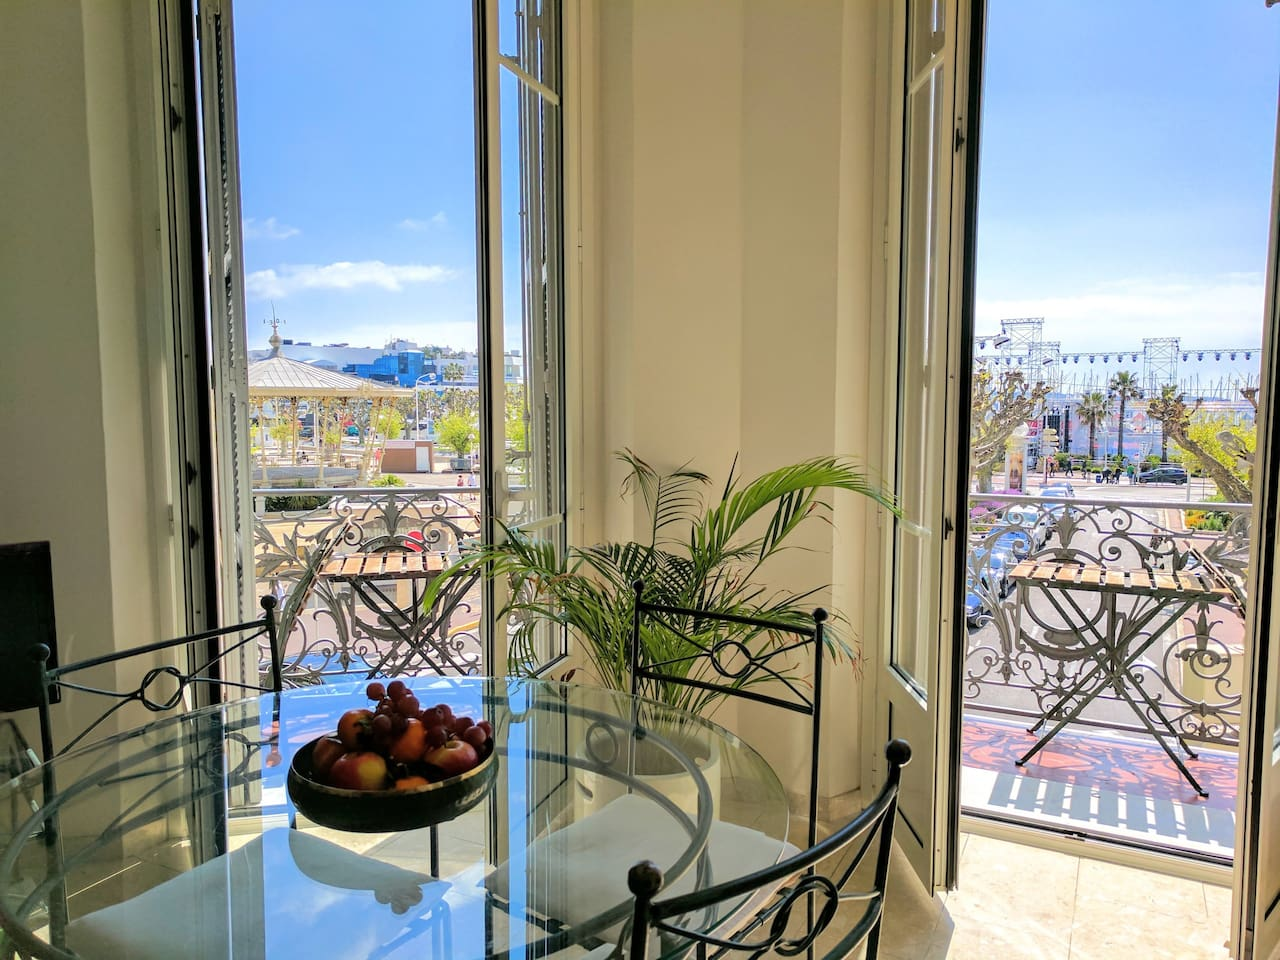 Dining area with balconies overlooking the square.